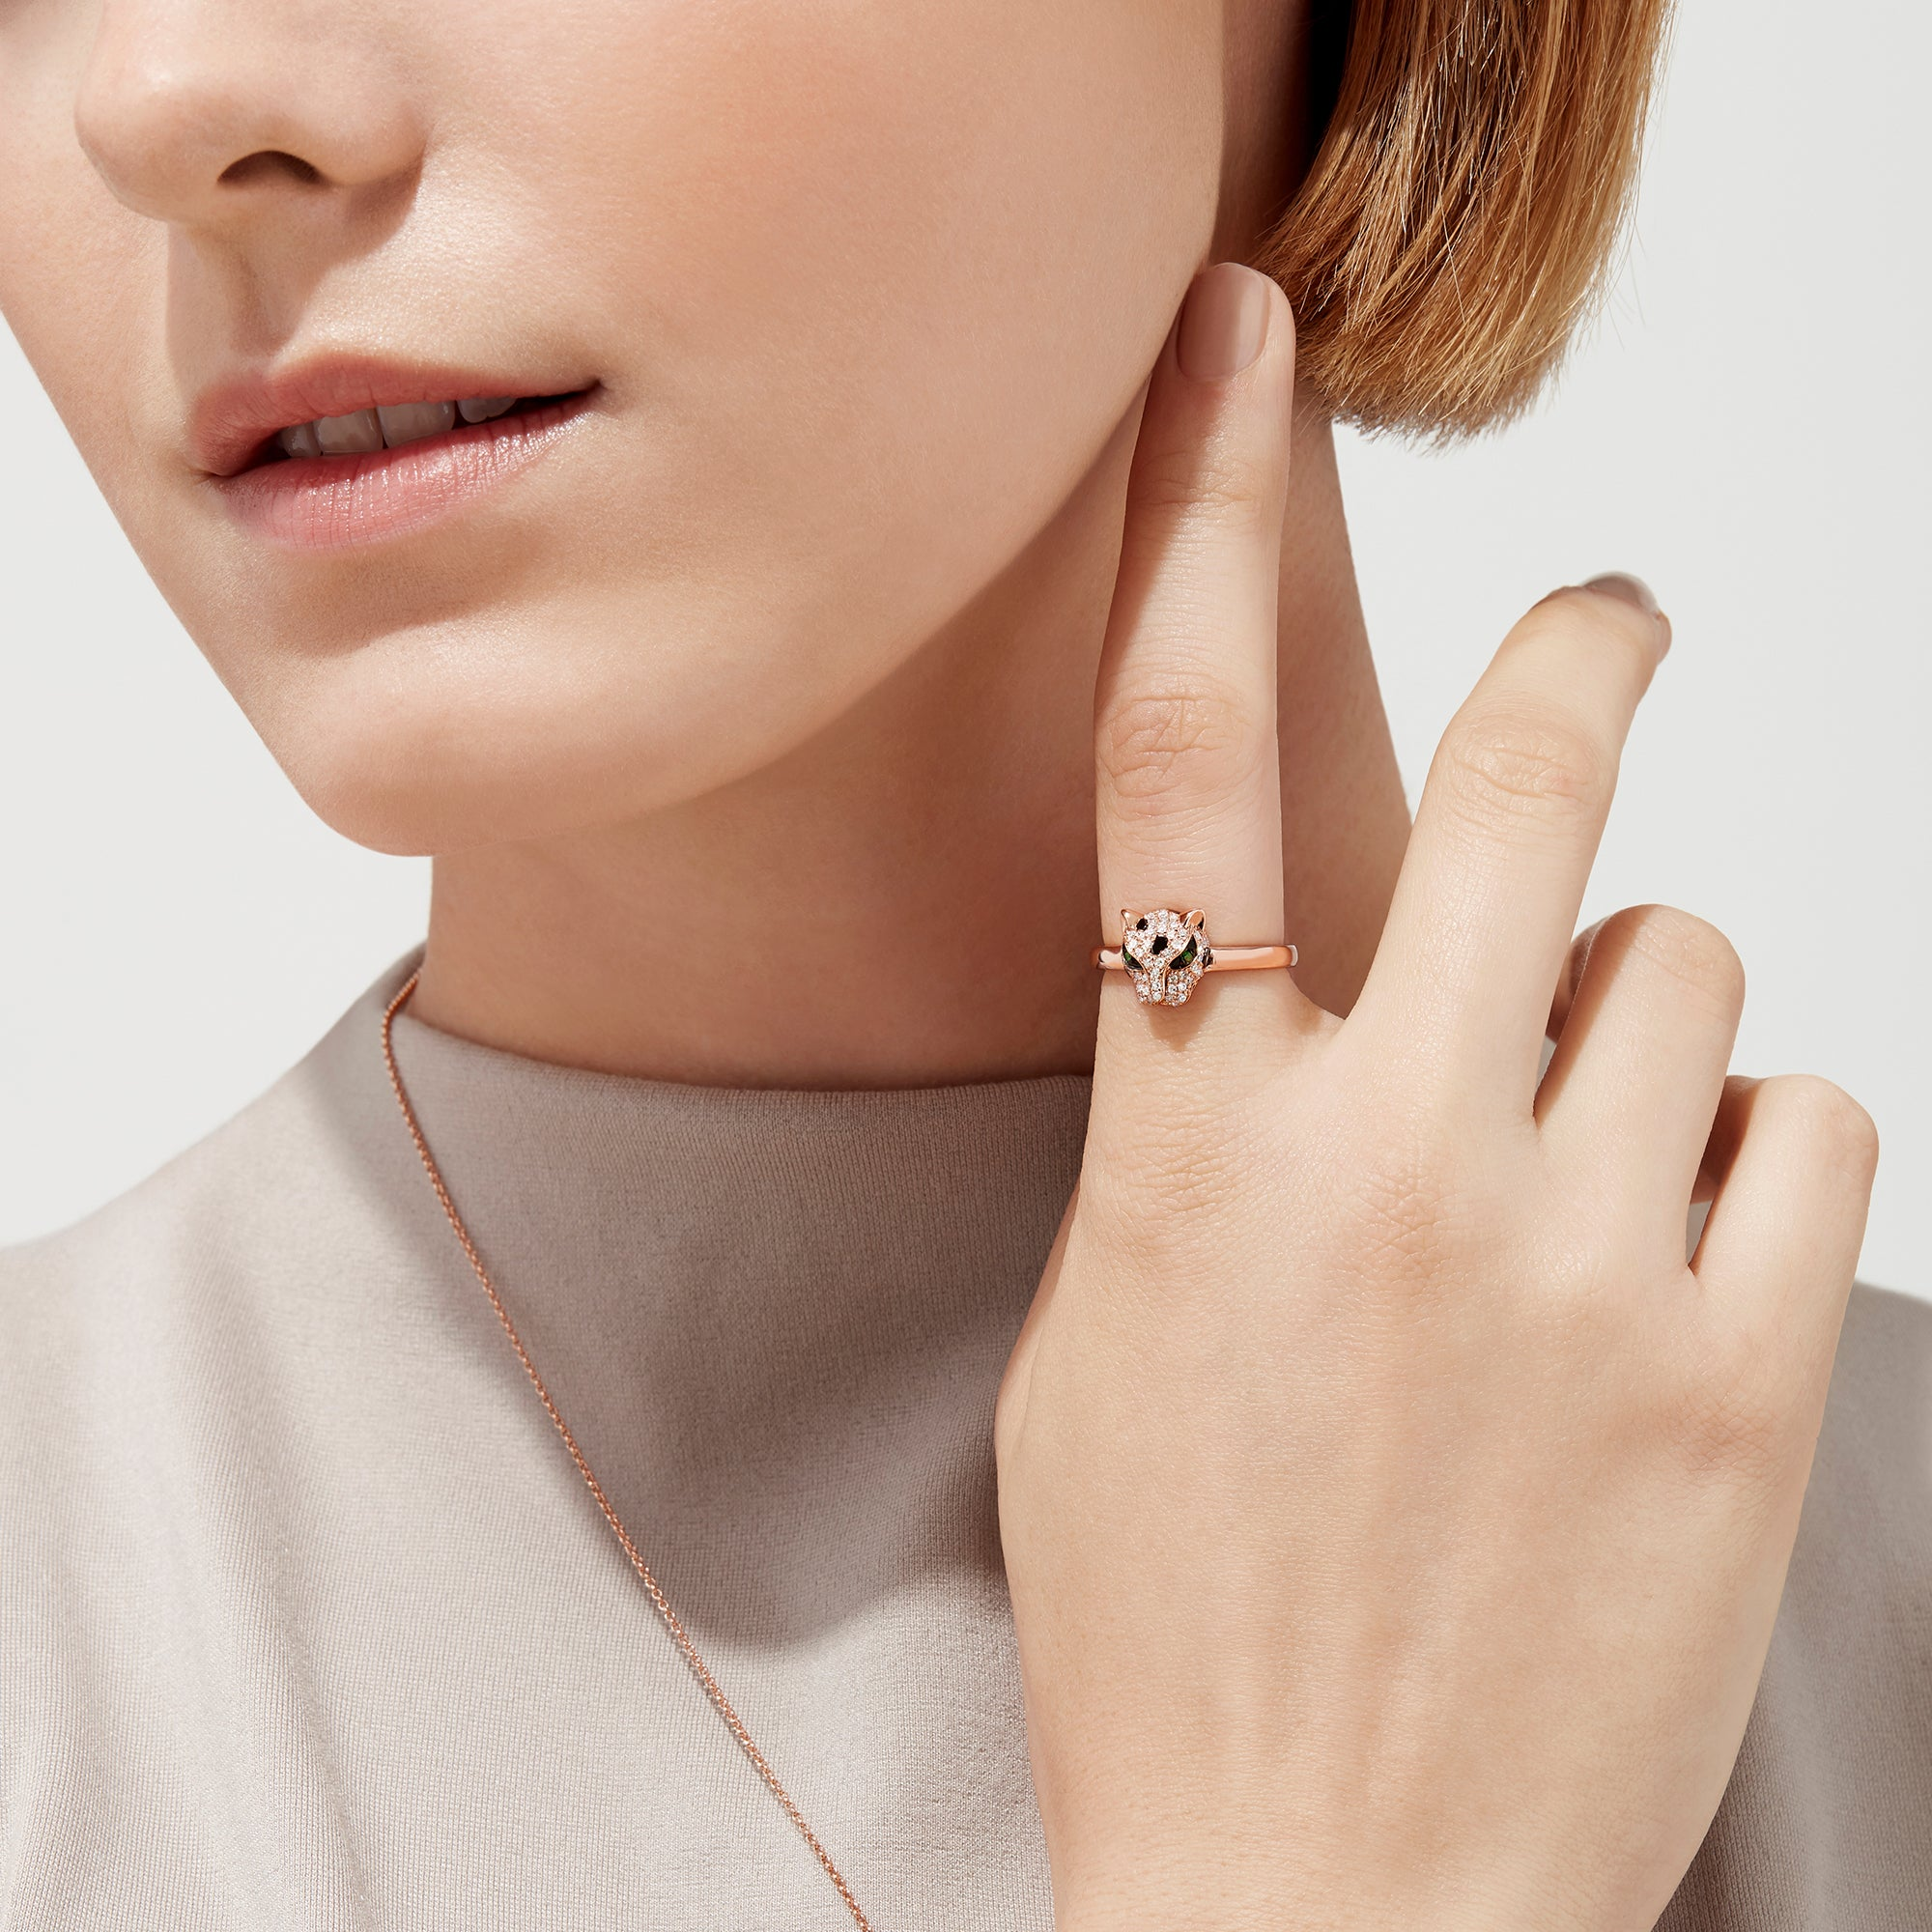 Effy Jewelry Signature Ring